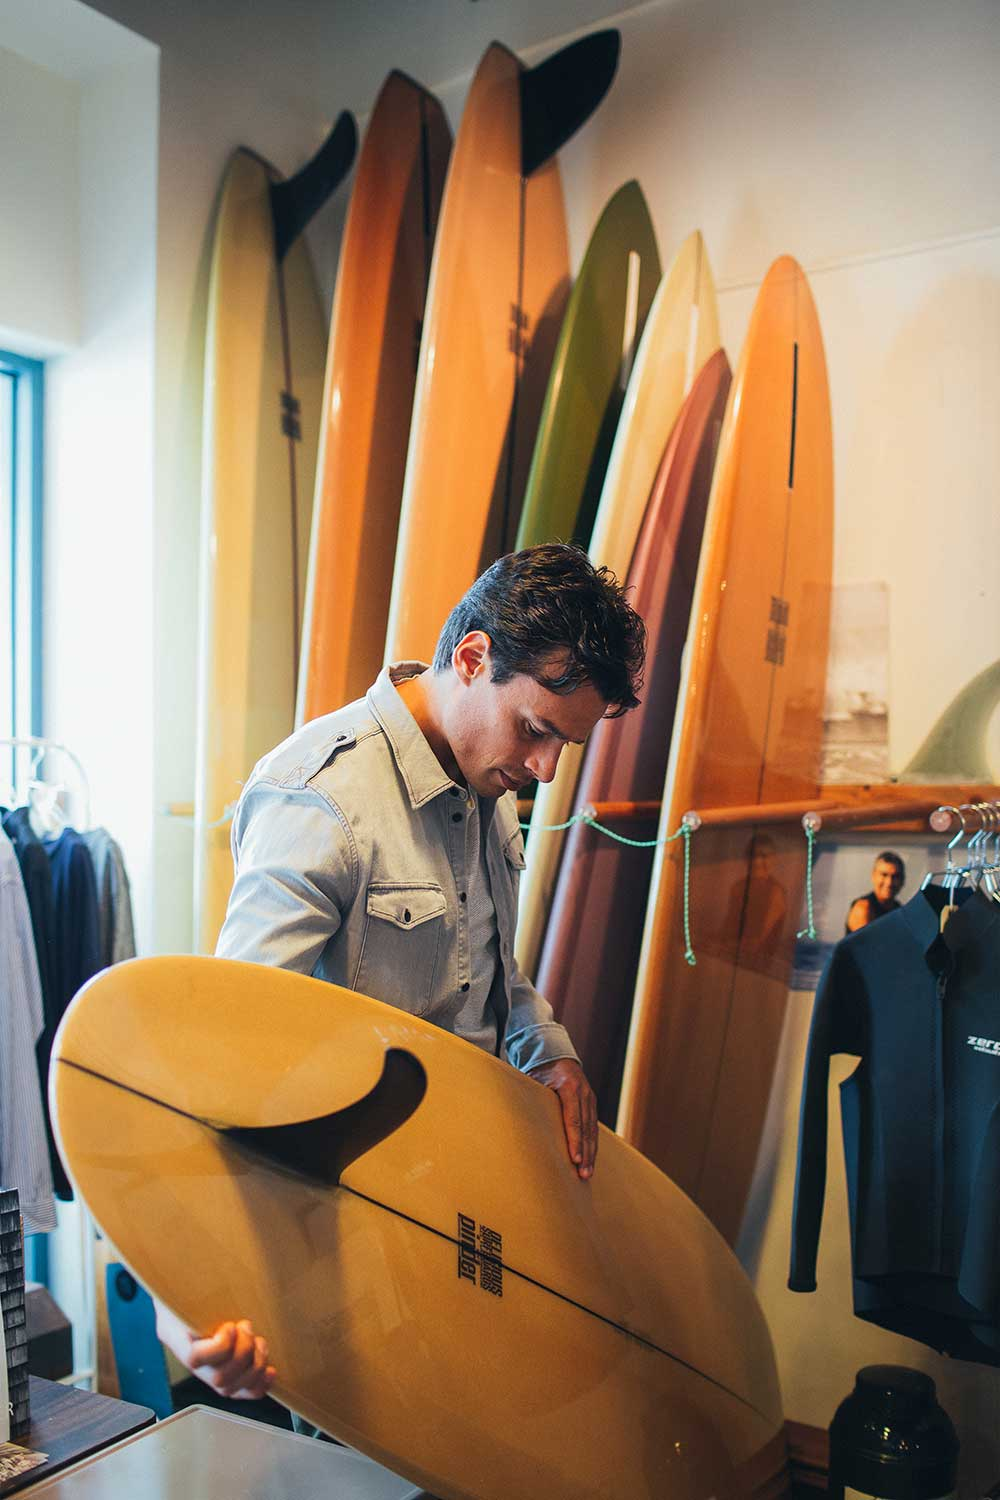 Man looking at assortment of wood surfboards